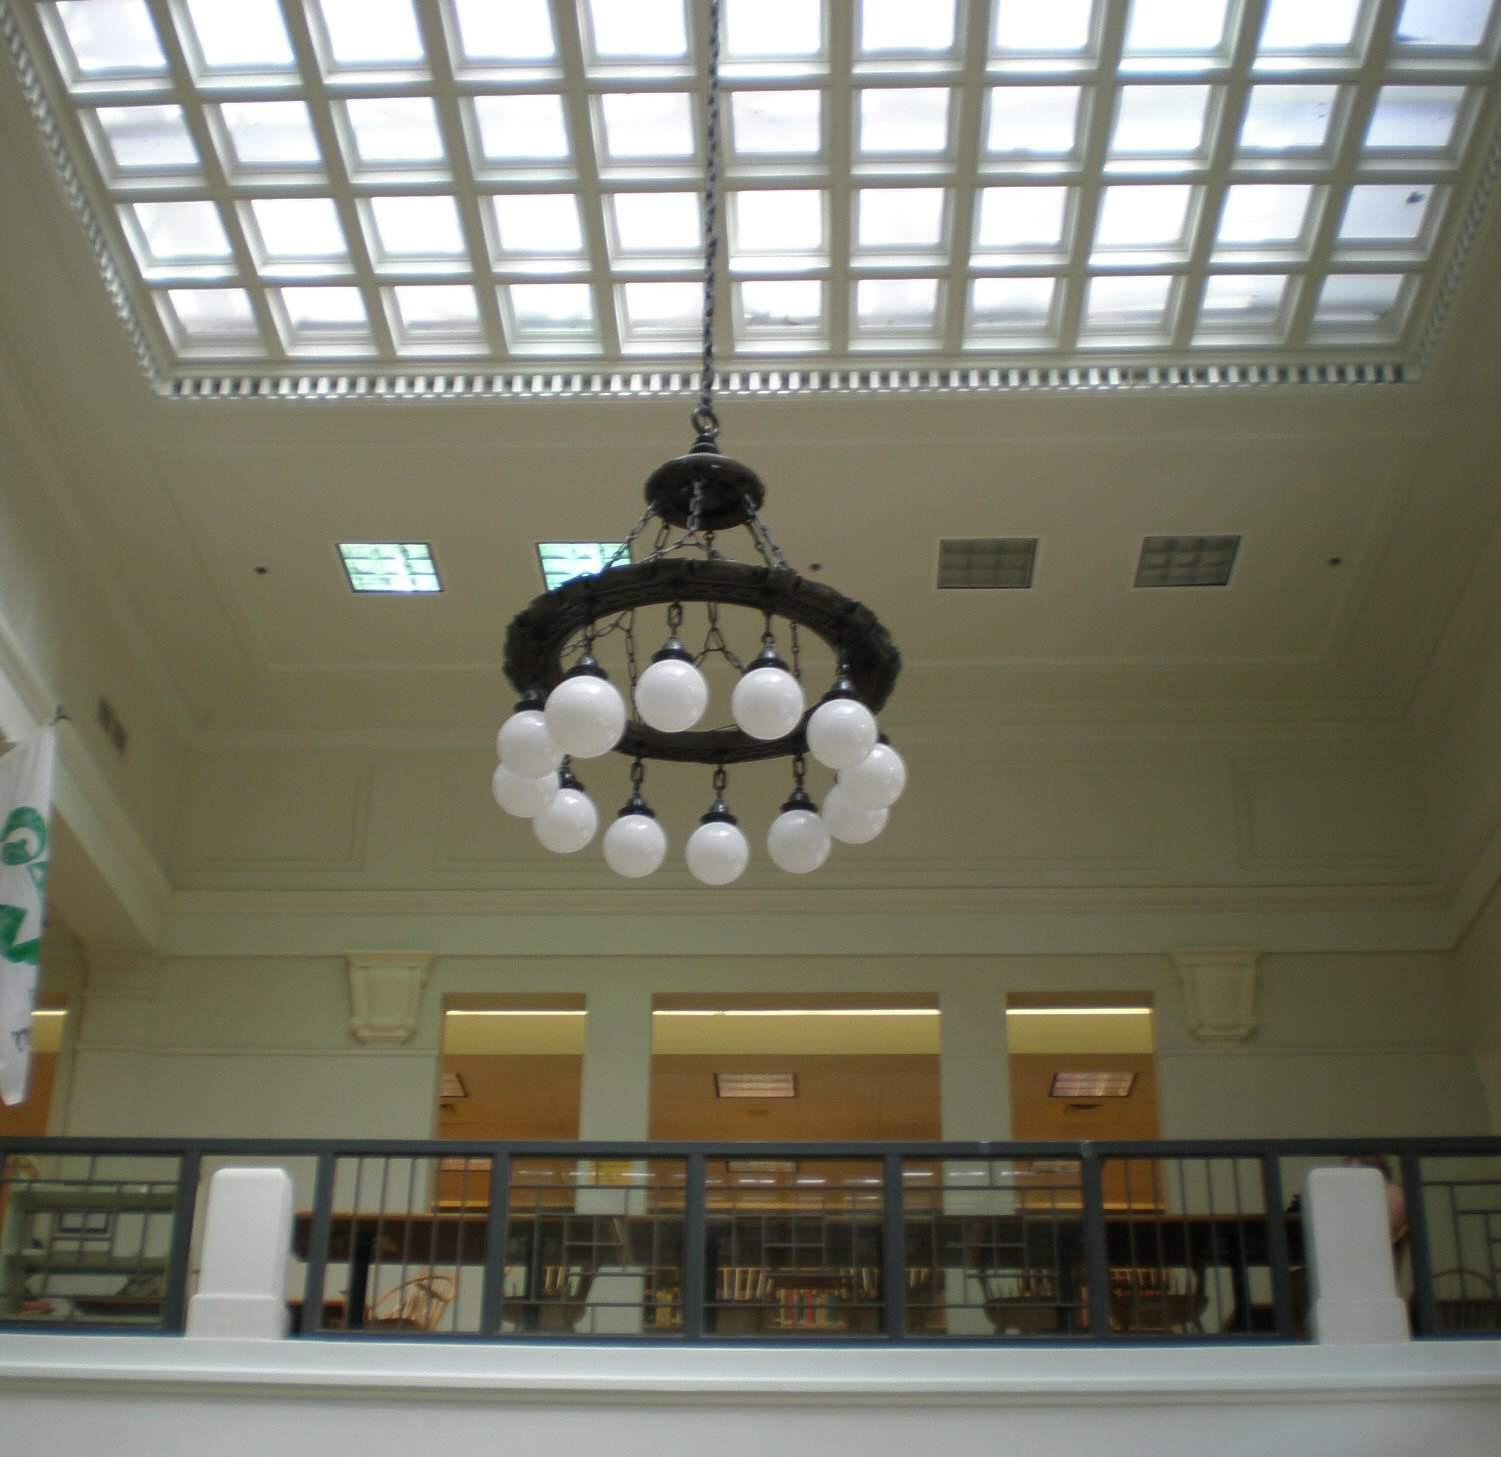 Chandelier and skylight in foyer, Hawaii State Library